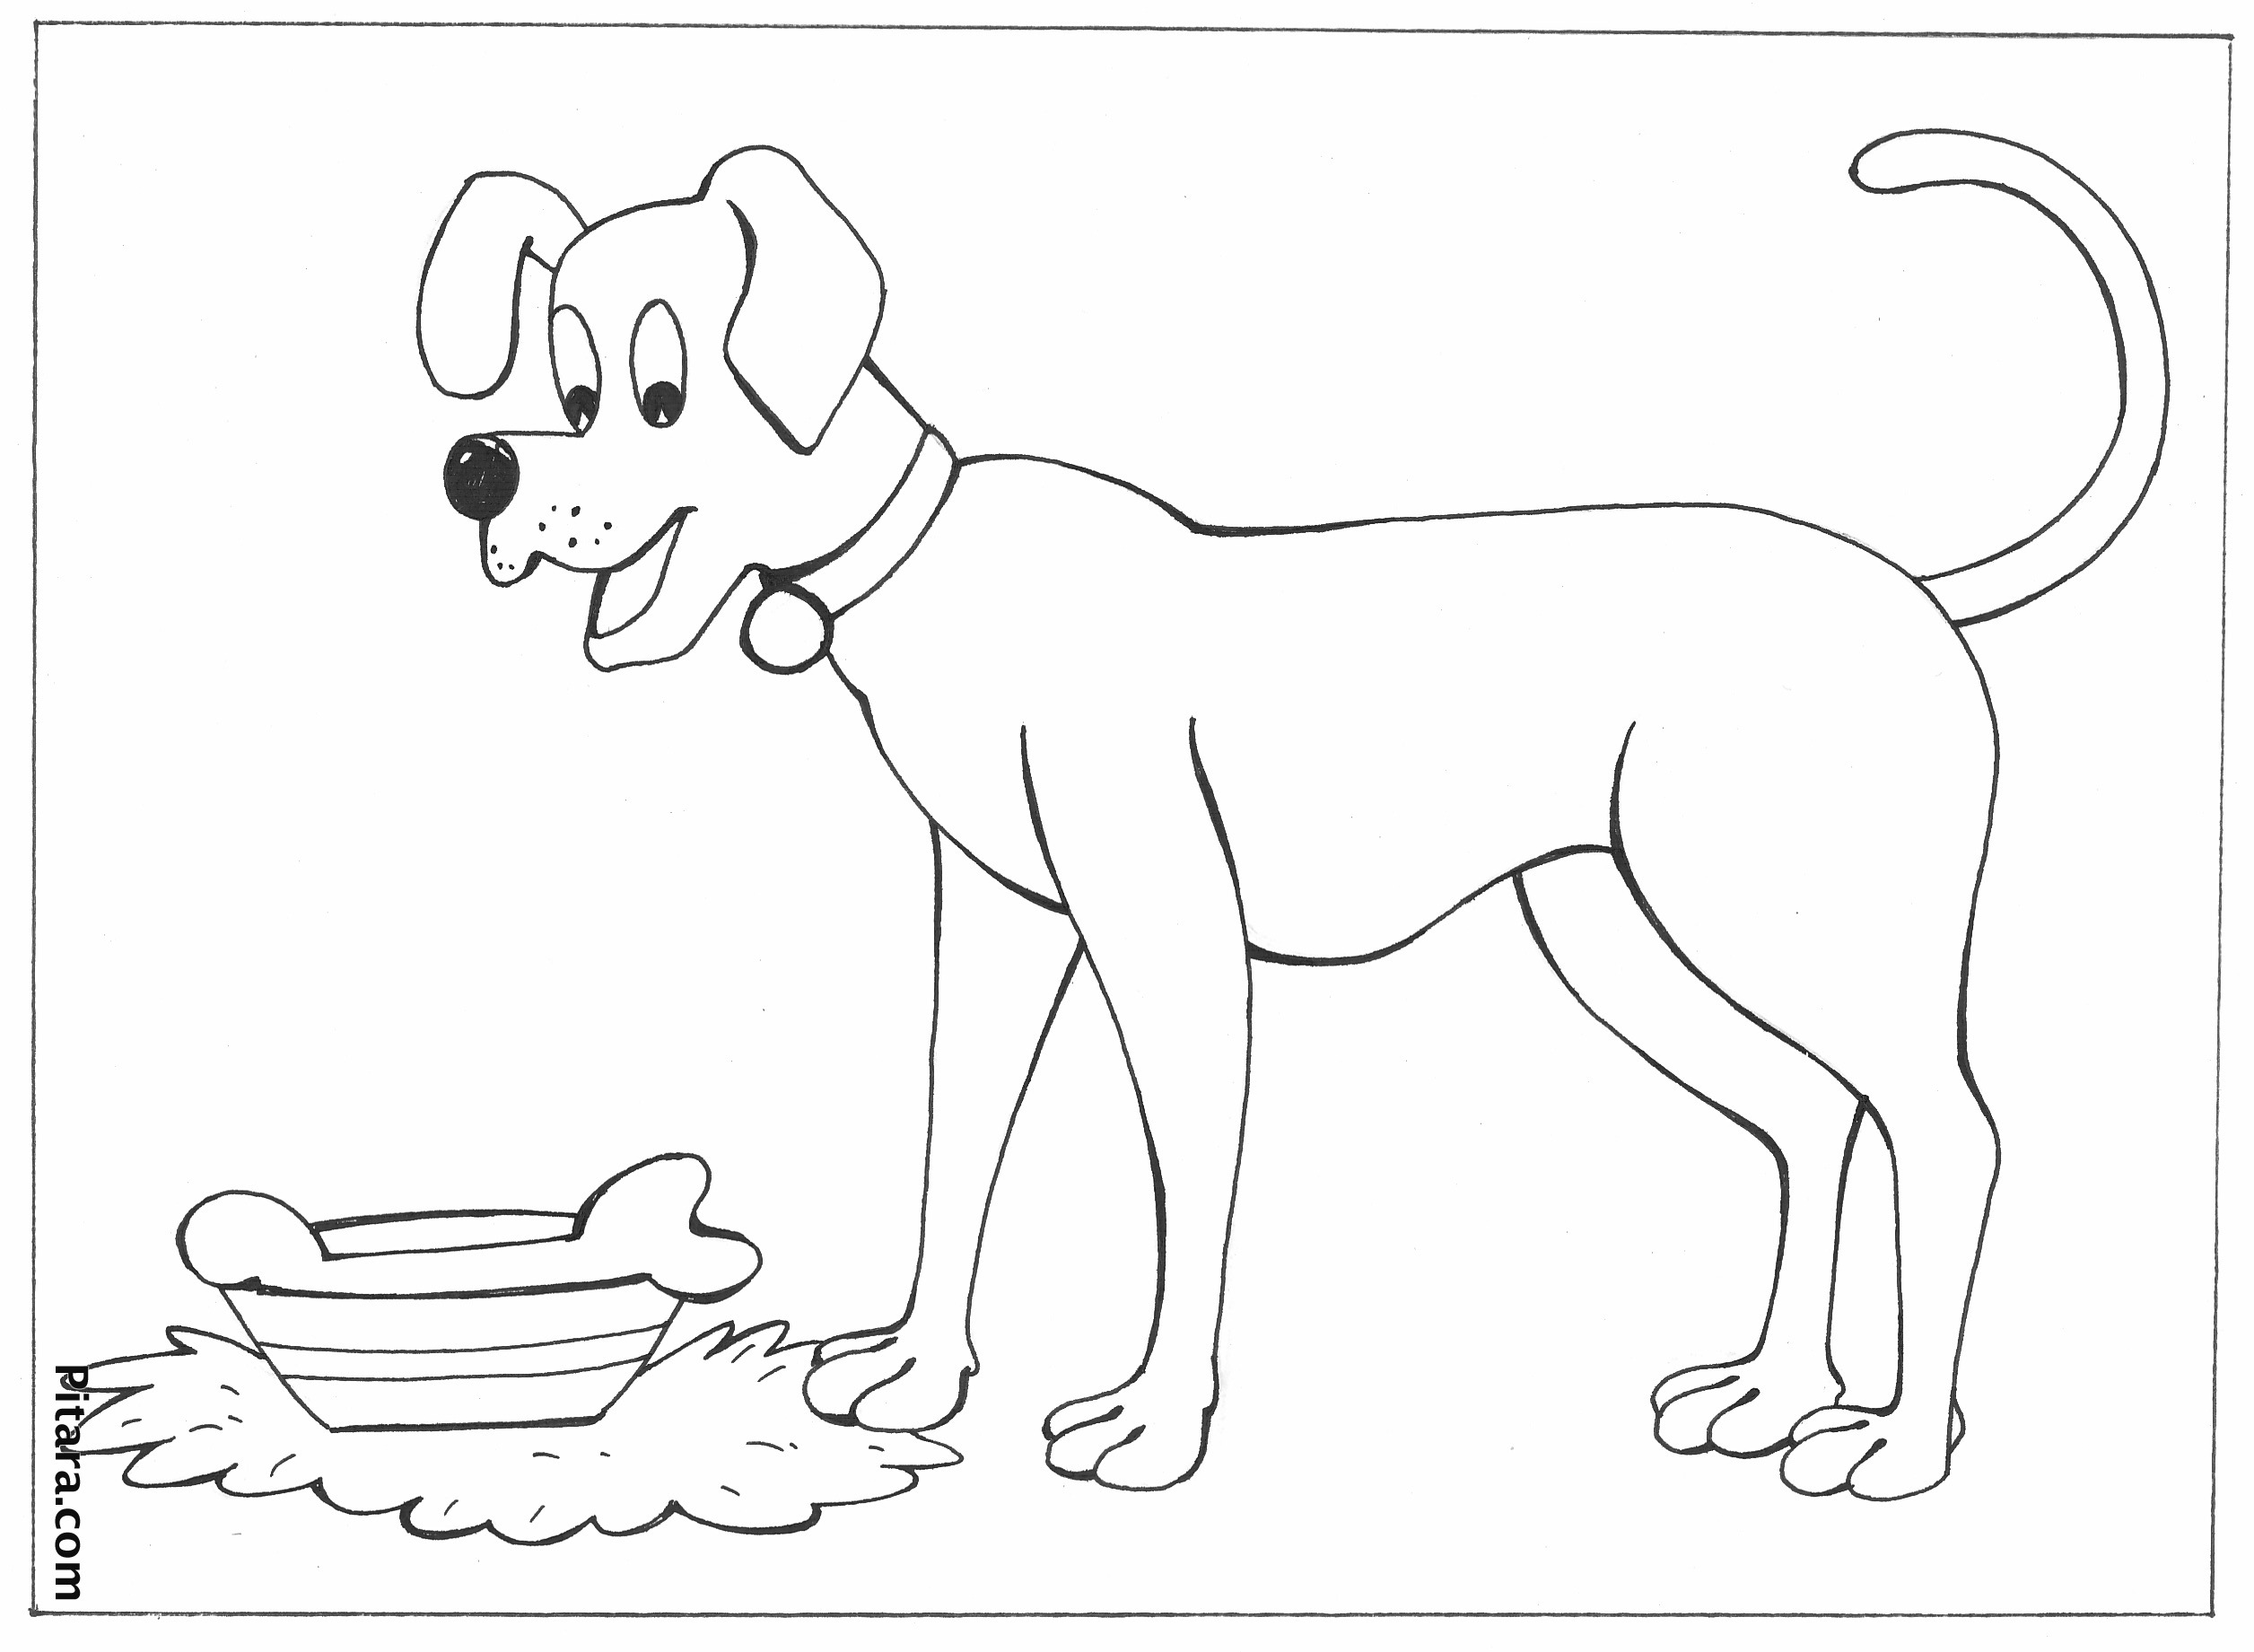 Domestic Animals Coloring Pages | Pitara Kids Network | animal coloring pages for toddlers